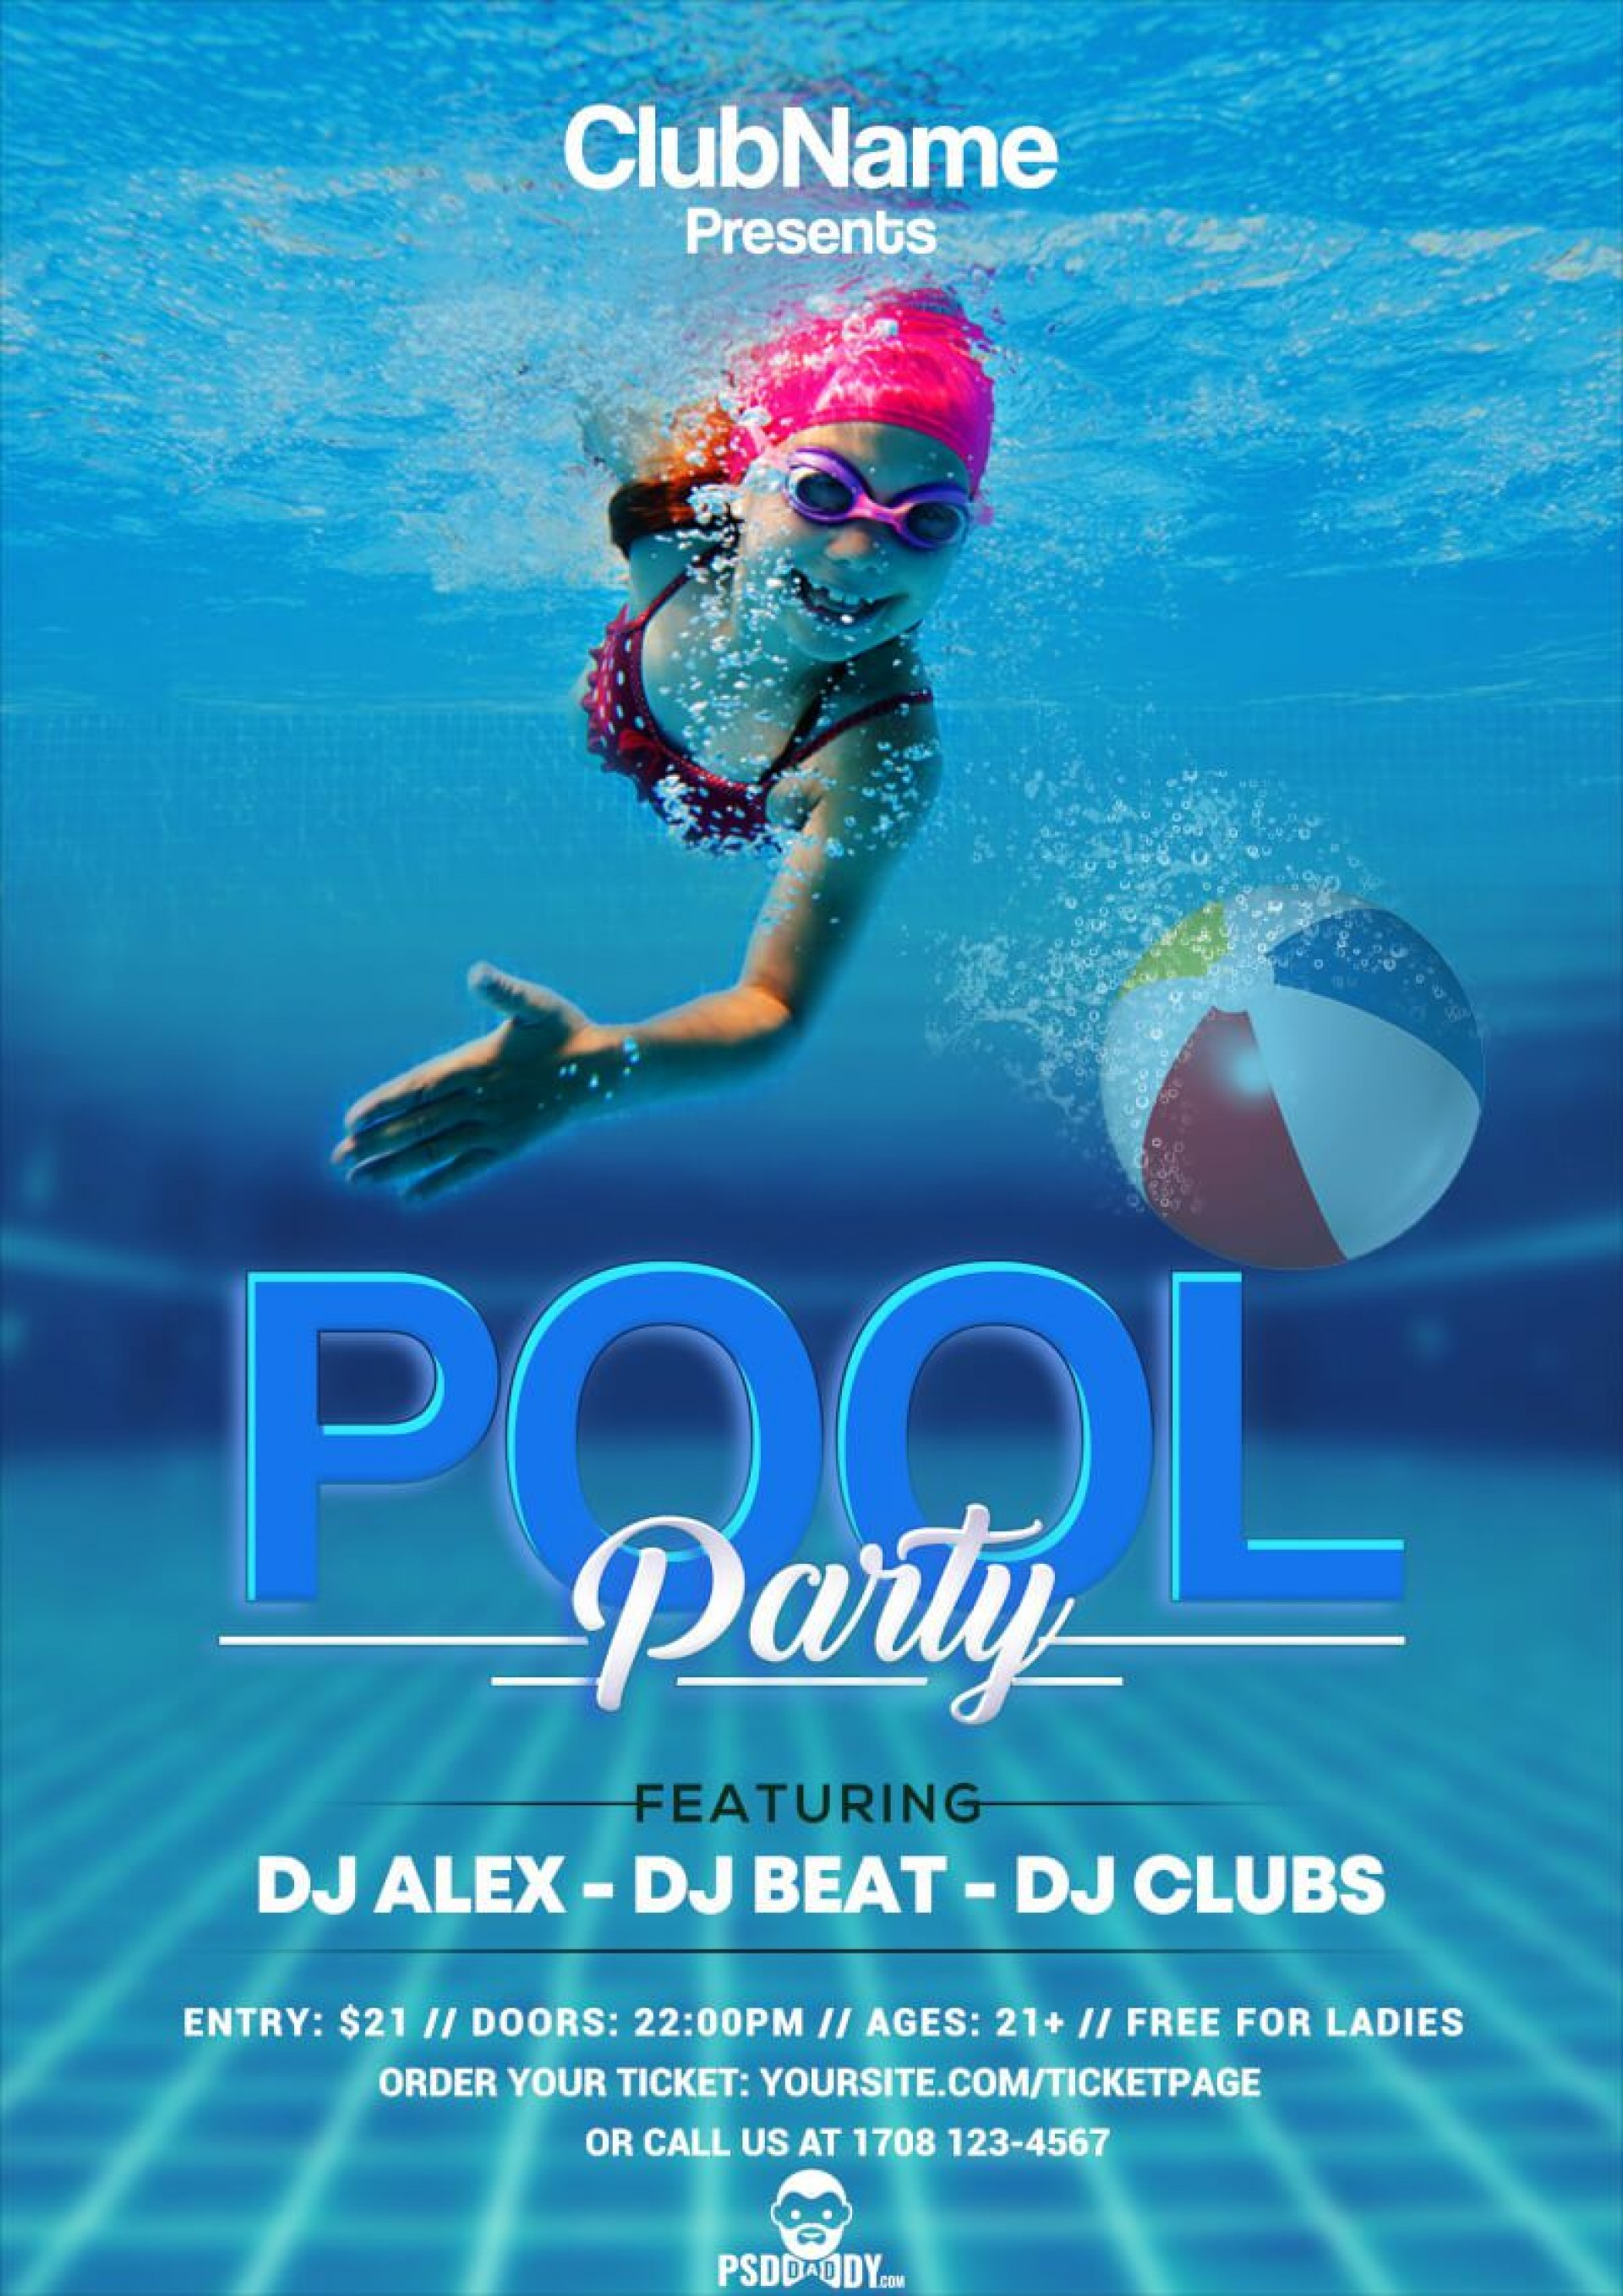 008 Imposing Free Pool Party Flyer Template Psd Example  Photoshop1920